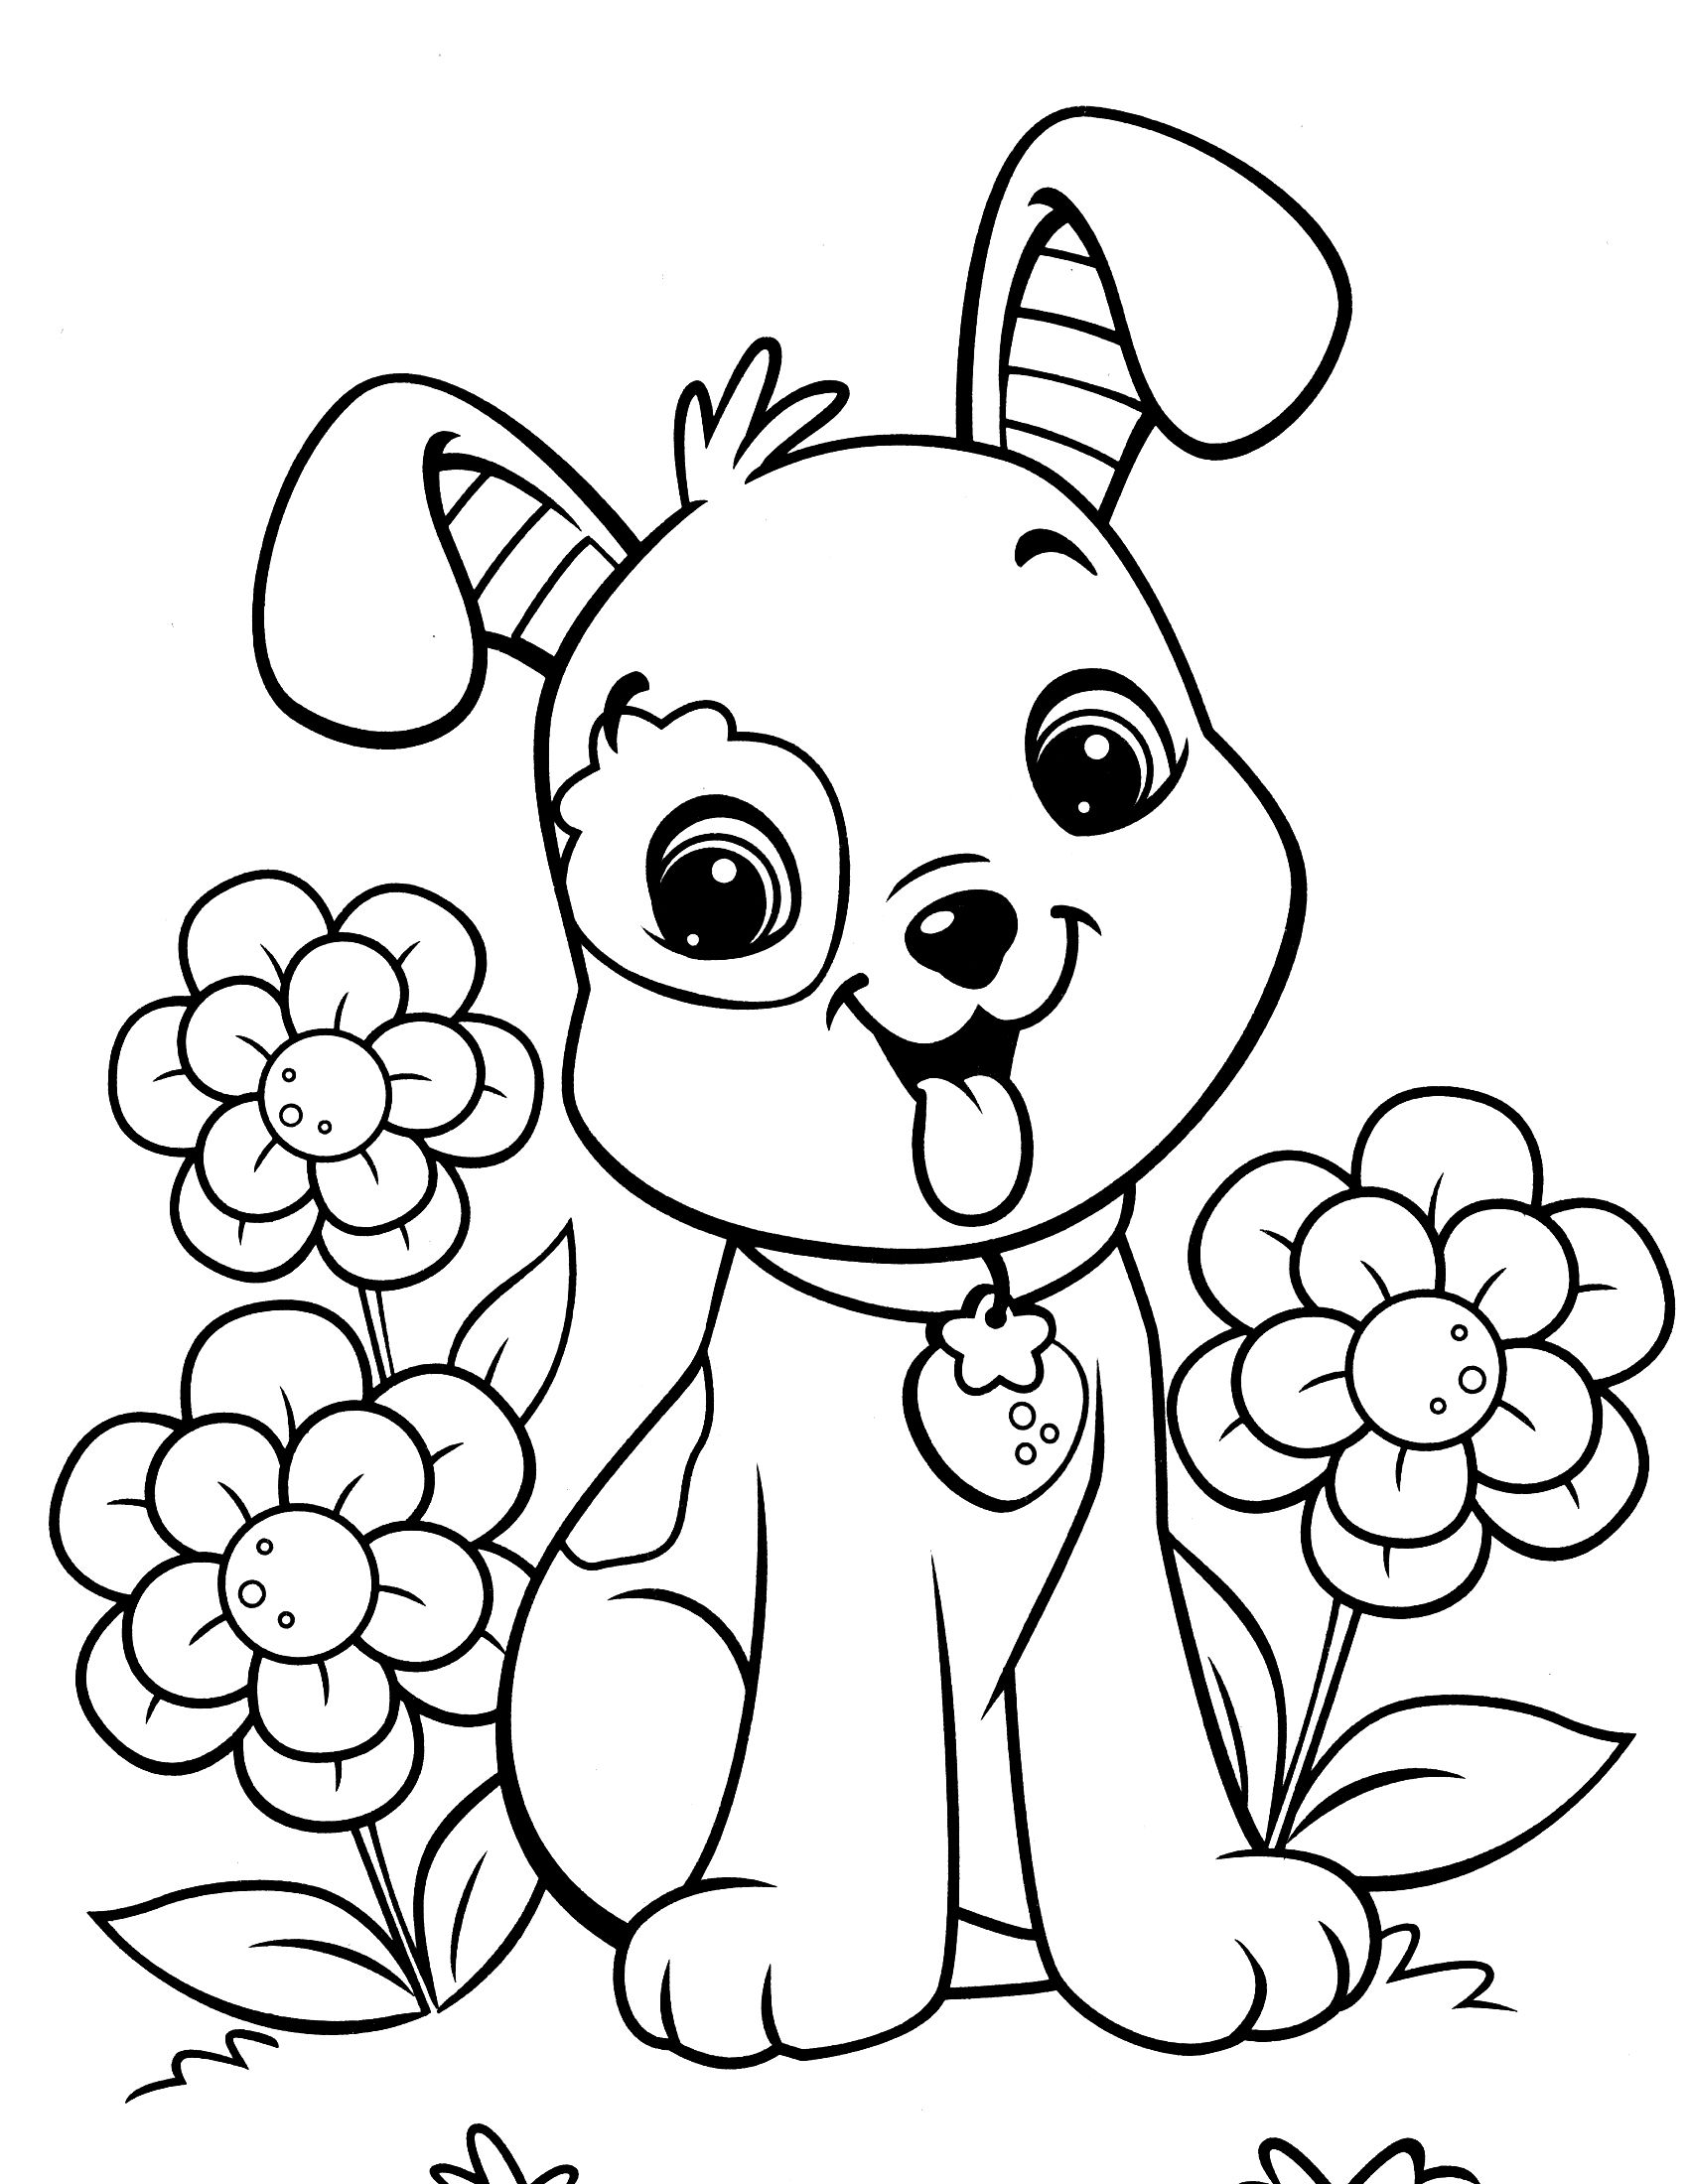 puppy coloring pages Google Search coloring Dog